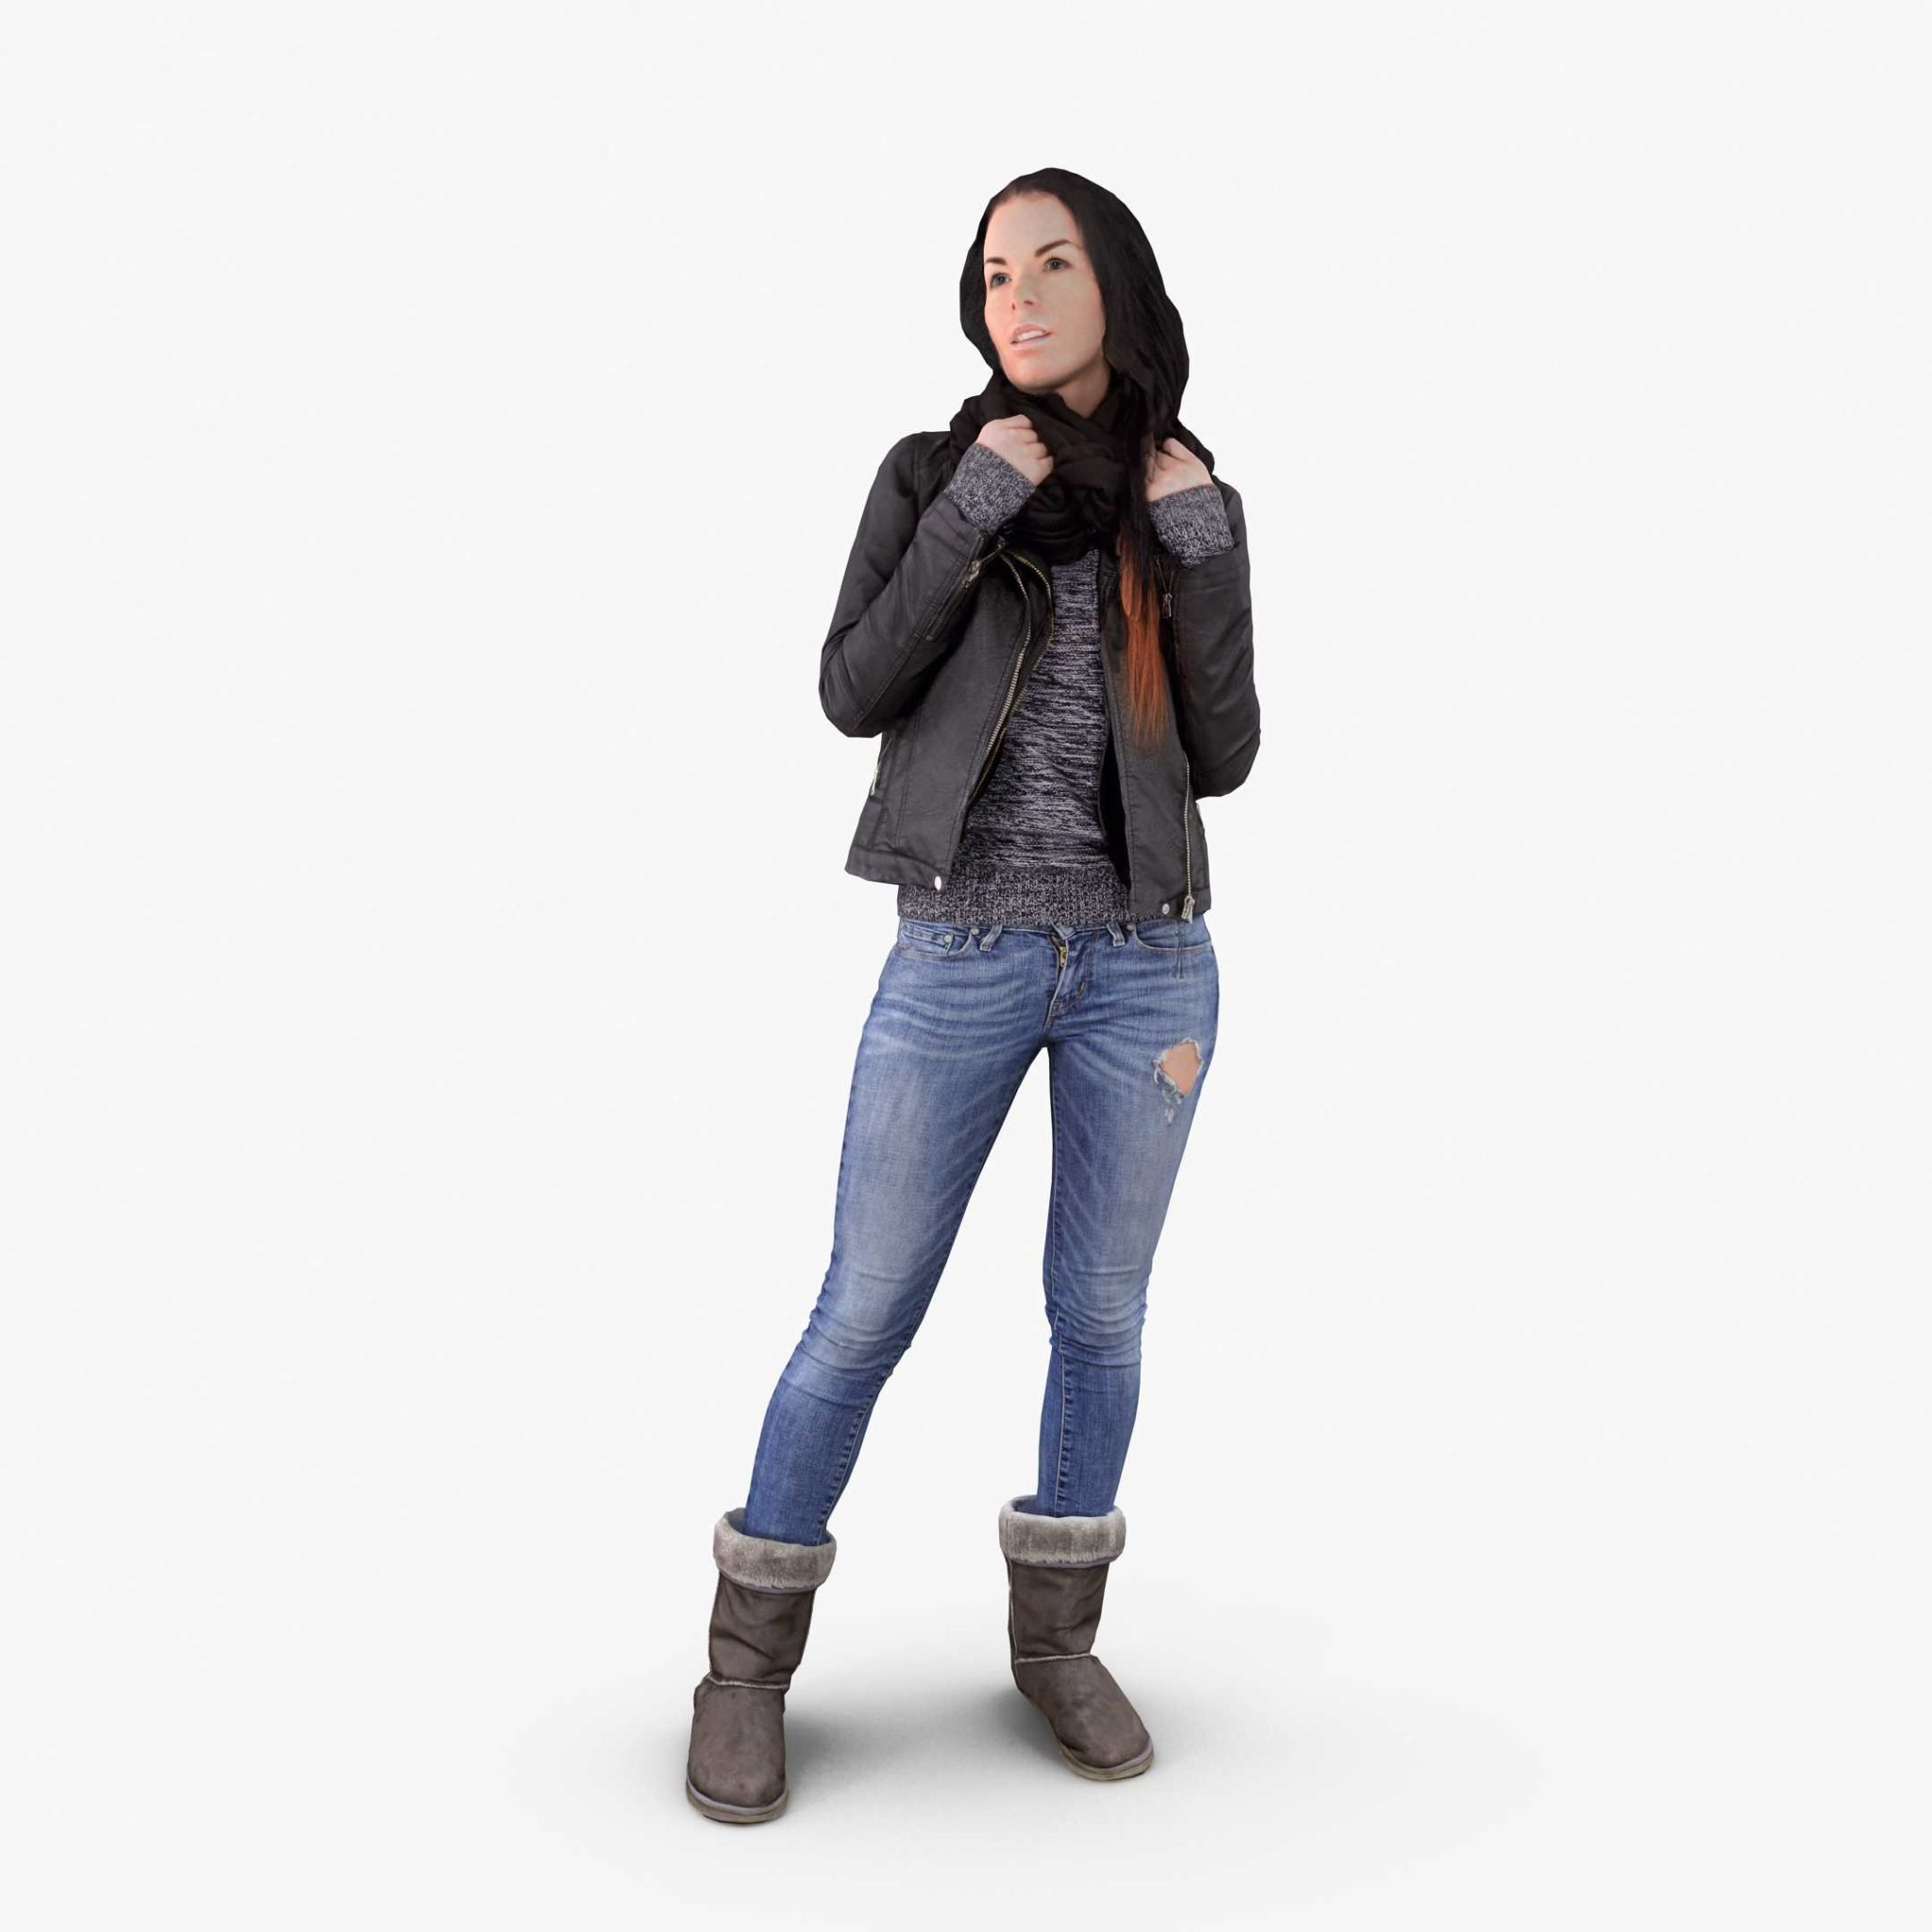 Casual Woman Posed 3D Model, for download files in 3ds, max, obj, fbx with low poly, game, and VR/AR options. Ready for 3D Printing.